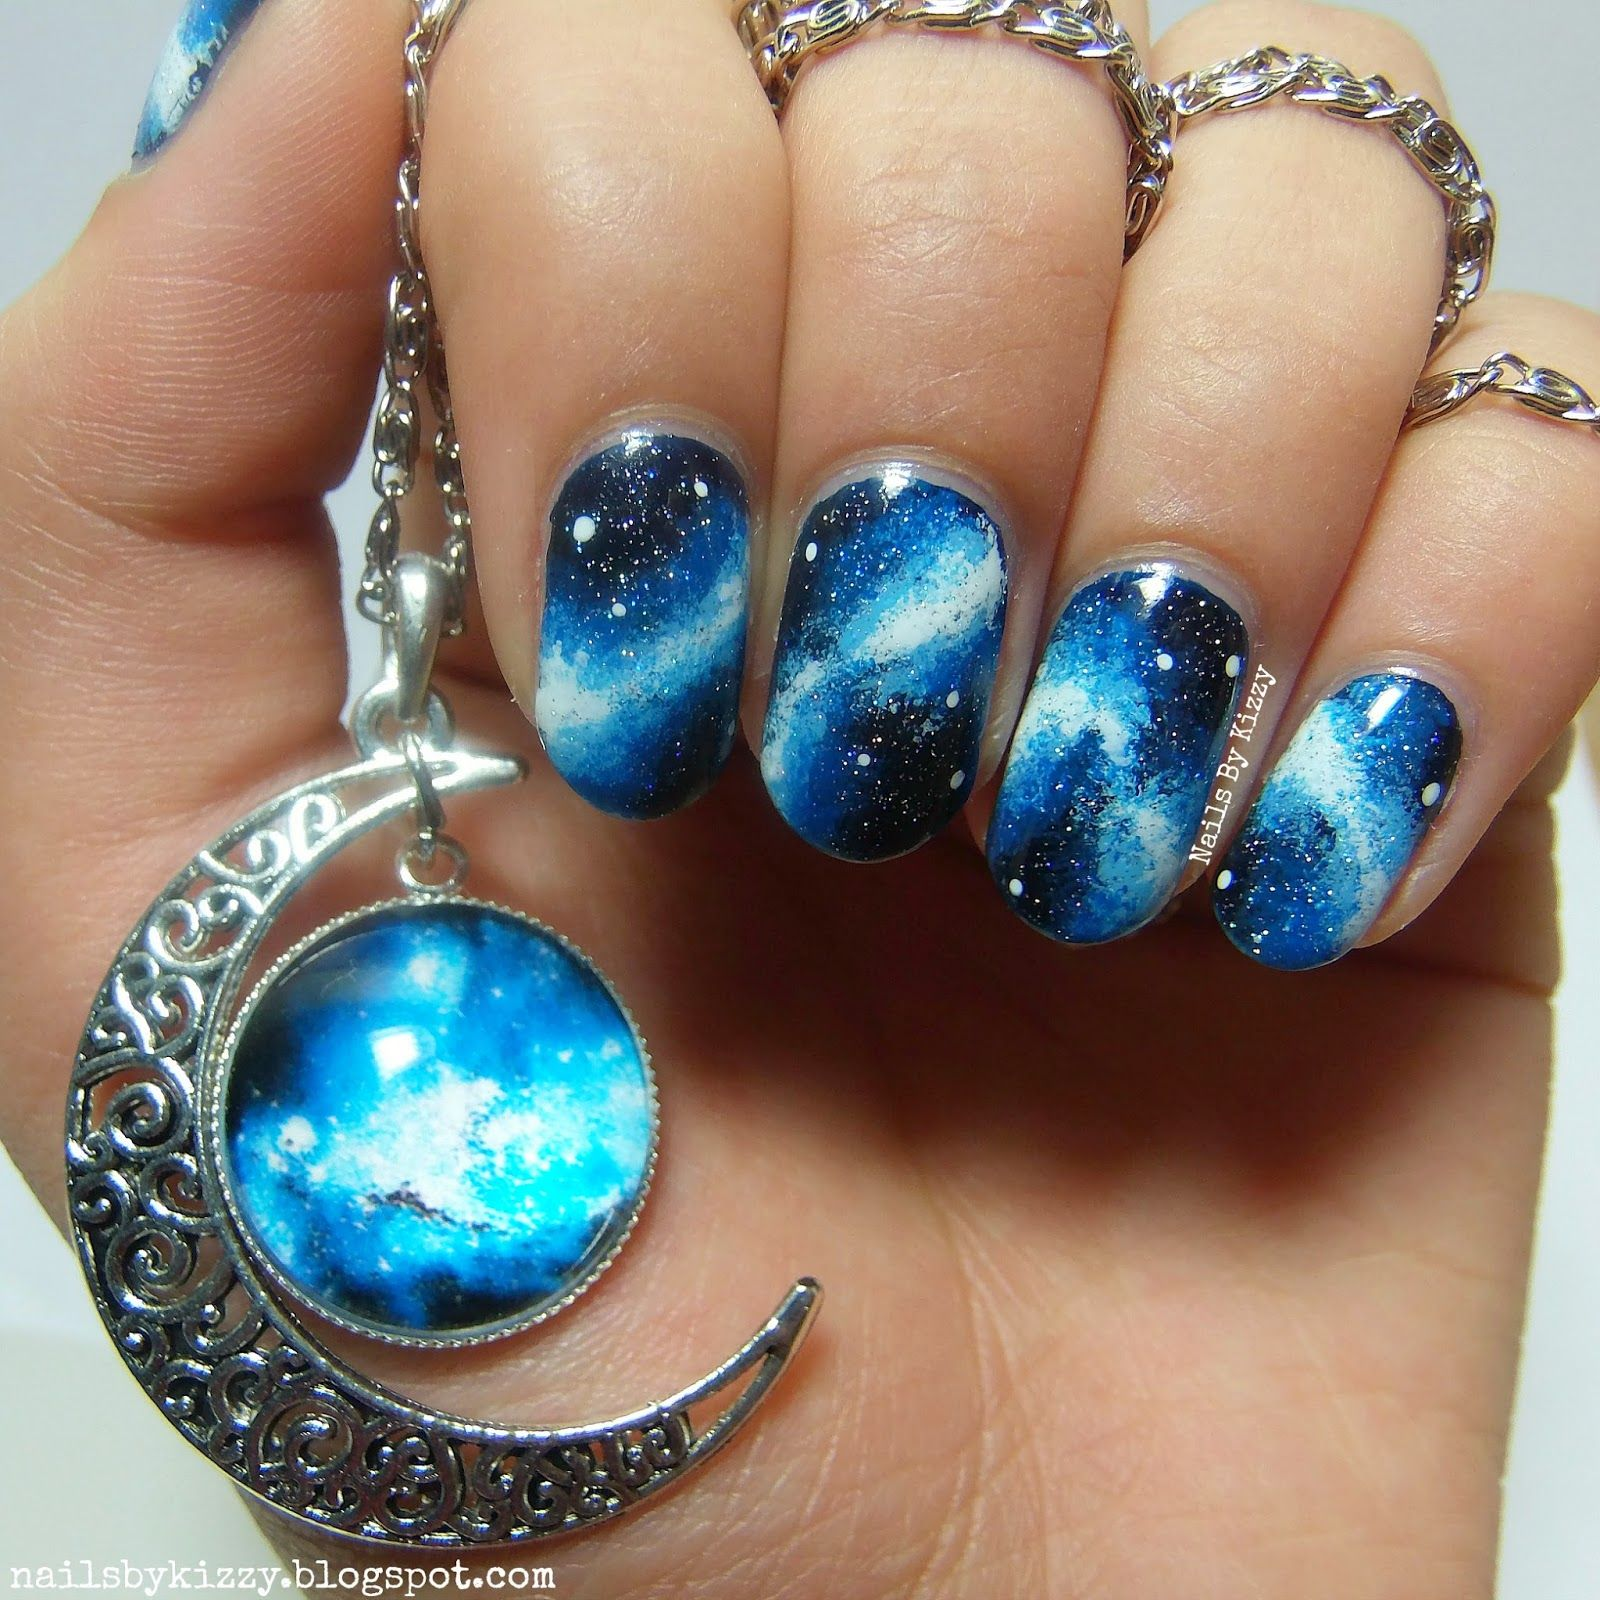 Nails By Kizzy: 1 Year Blogiversary - Galaxy Nails! | Nora ...